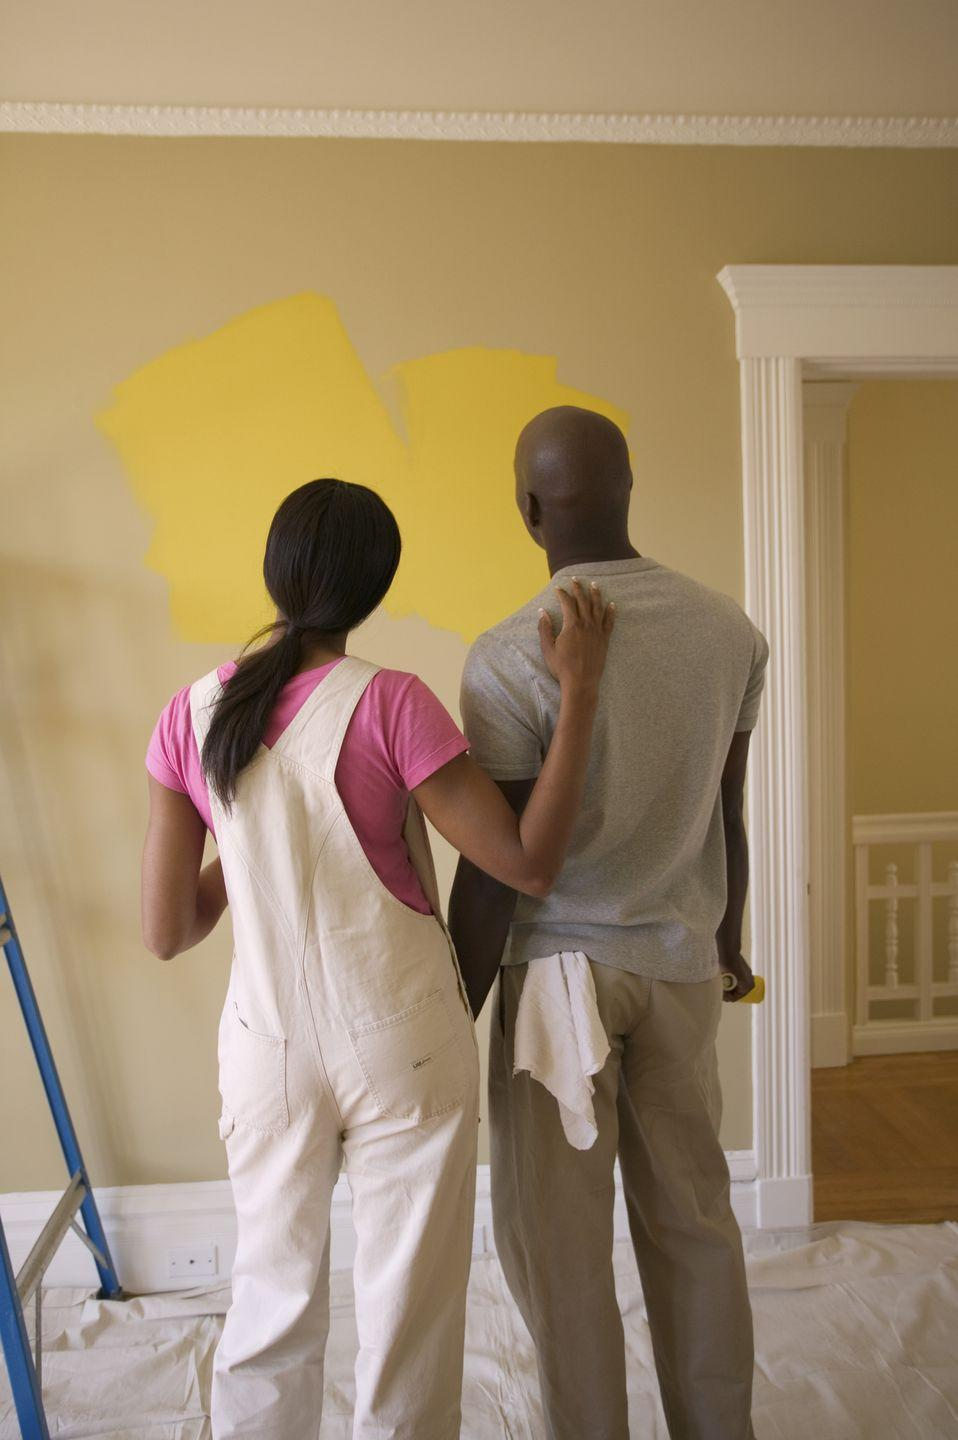 <p>Pick something you can accomplish in one session, such as painting an accent wall, rearranging furniture, or hanging new artwork or photographs.</p>